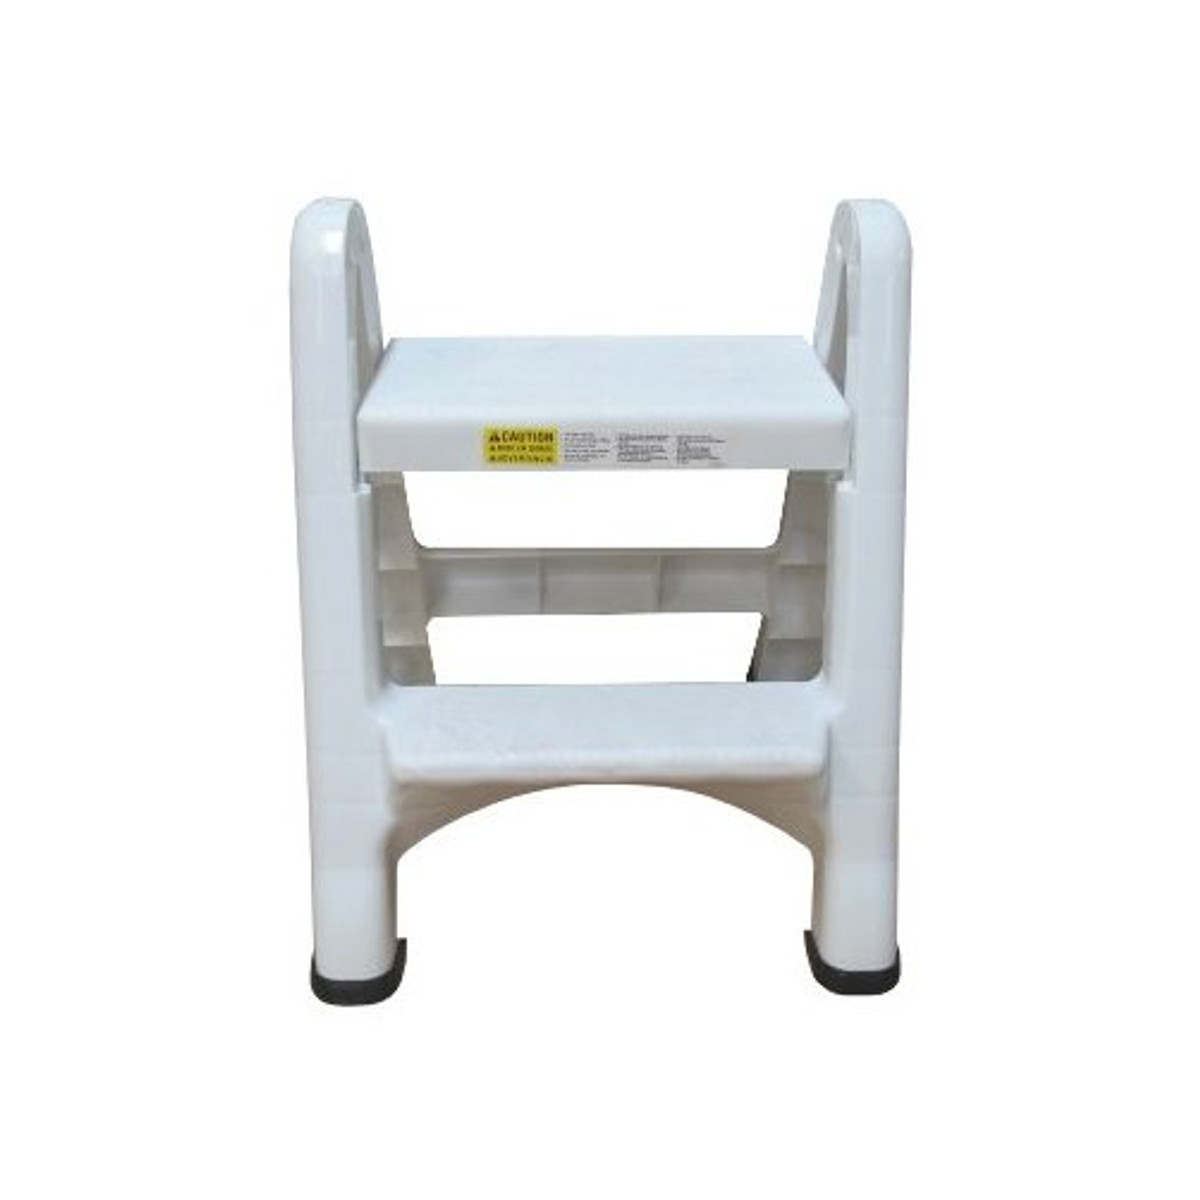 Incredible Plastic Two Step Folding Step Stool Available For Local Pick Up Only Lamtechconsult Wood Chair Design Ideas Lamtechconsultcom